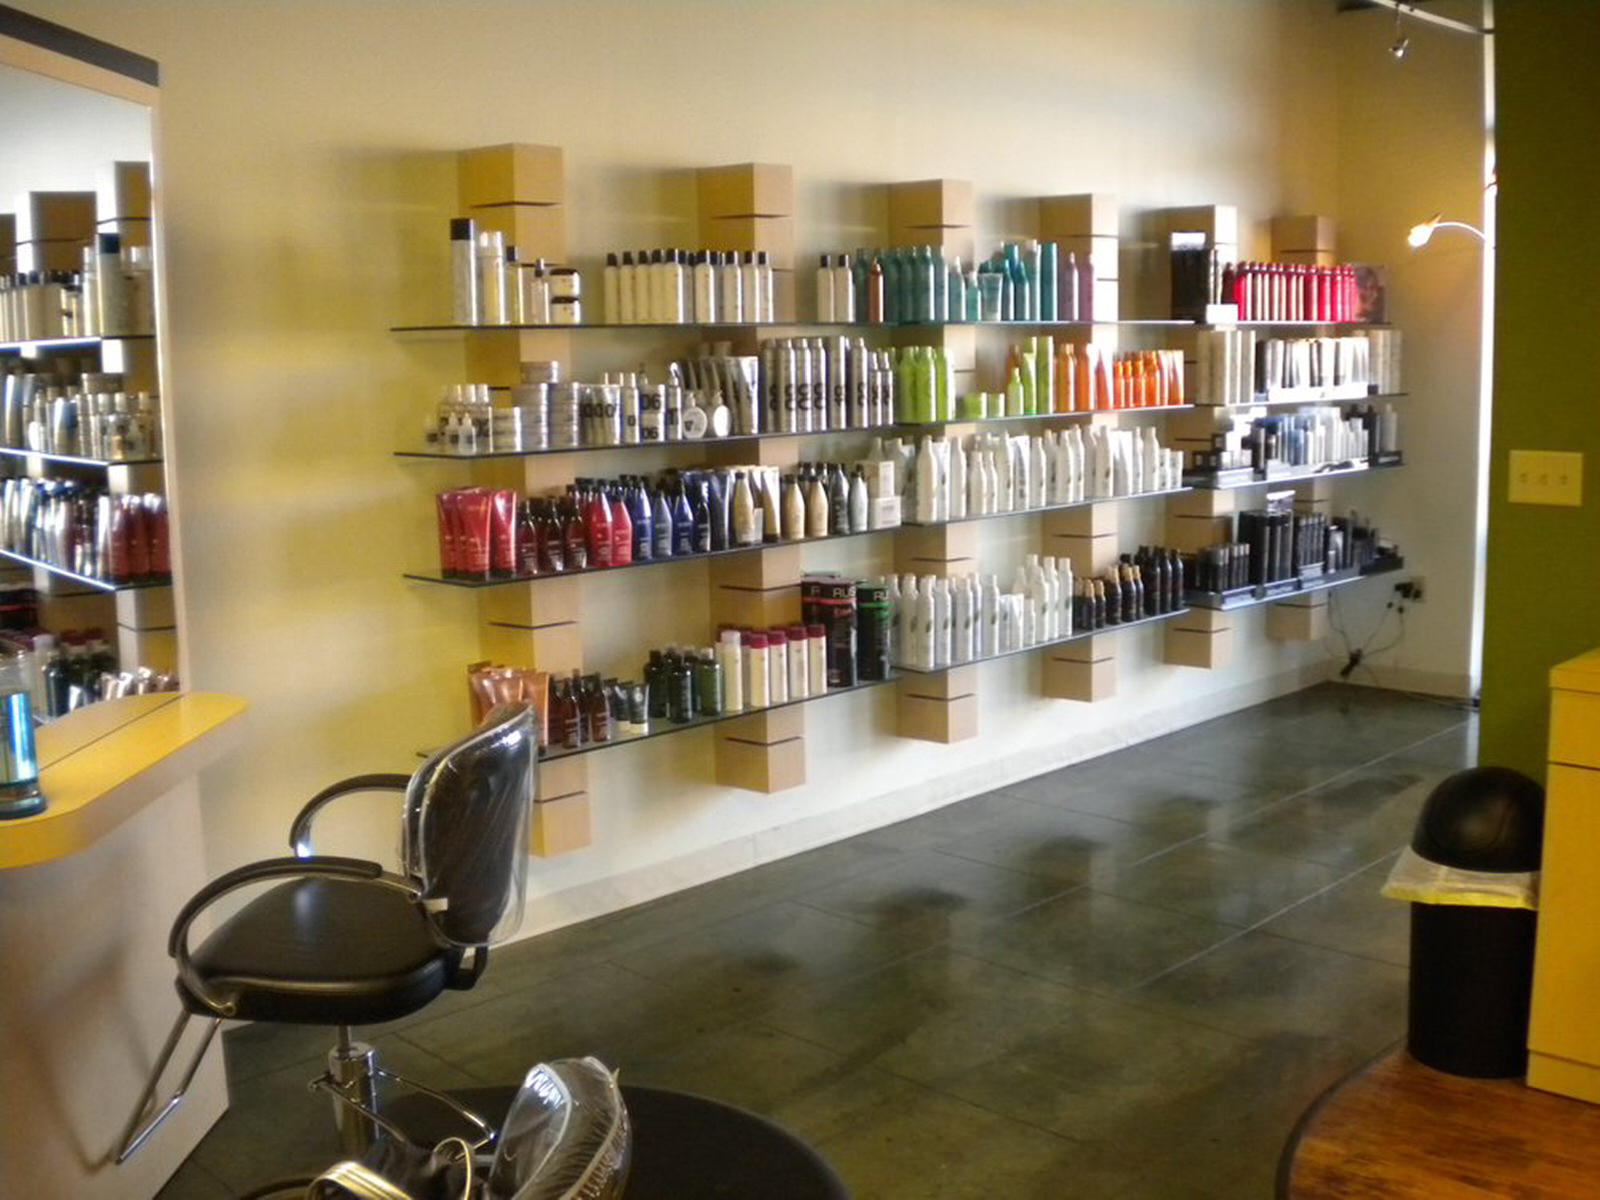 Gould's-Day-Spa-and-Salon-of-Collierville-Tennessee.jpg